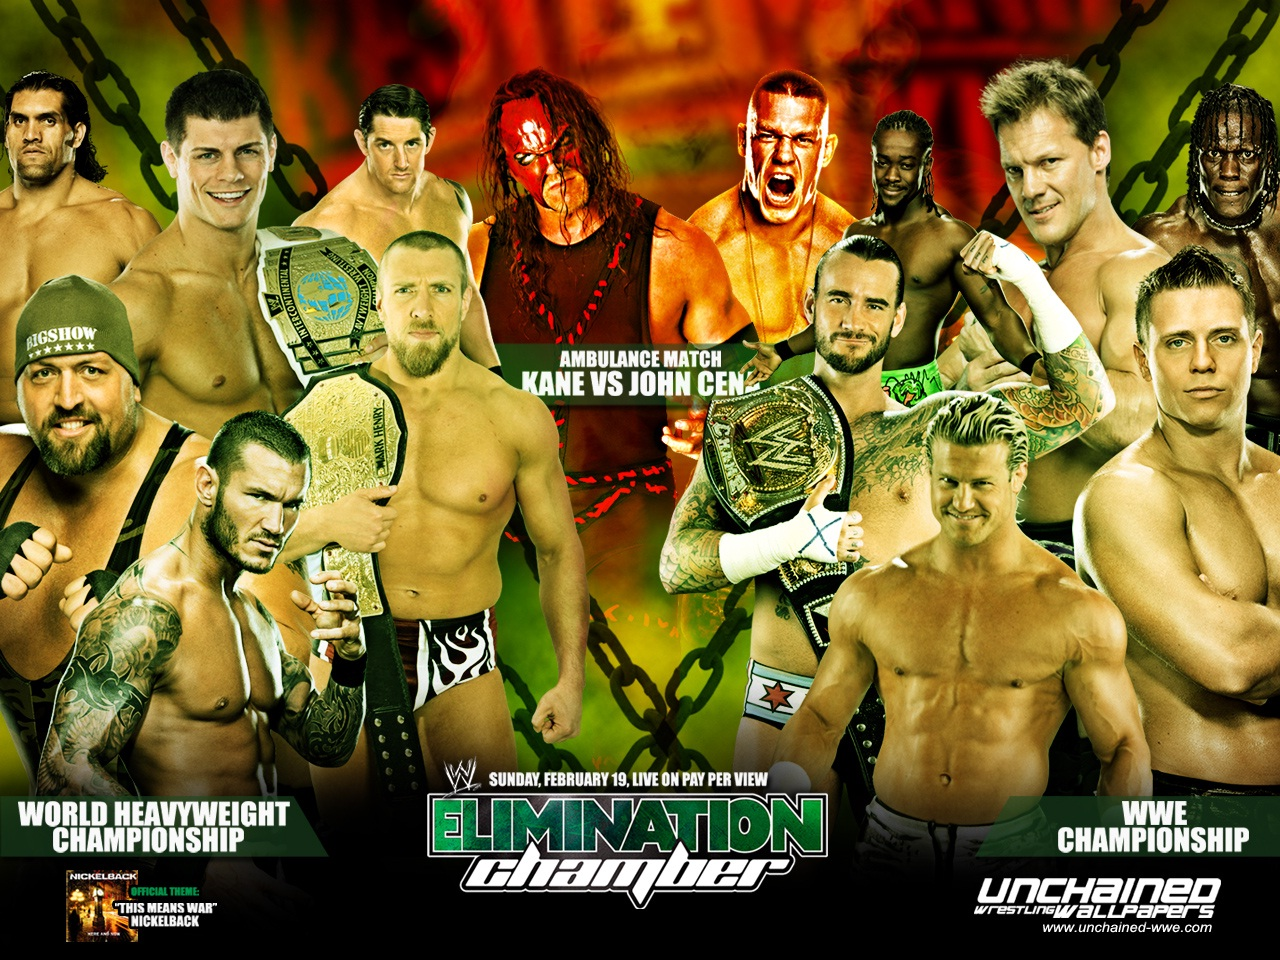 WWE Elimination Chamber 2012 Wallpaper Wallpaper and 1280x960